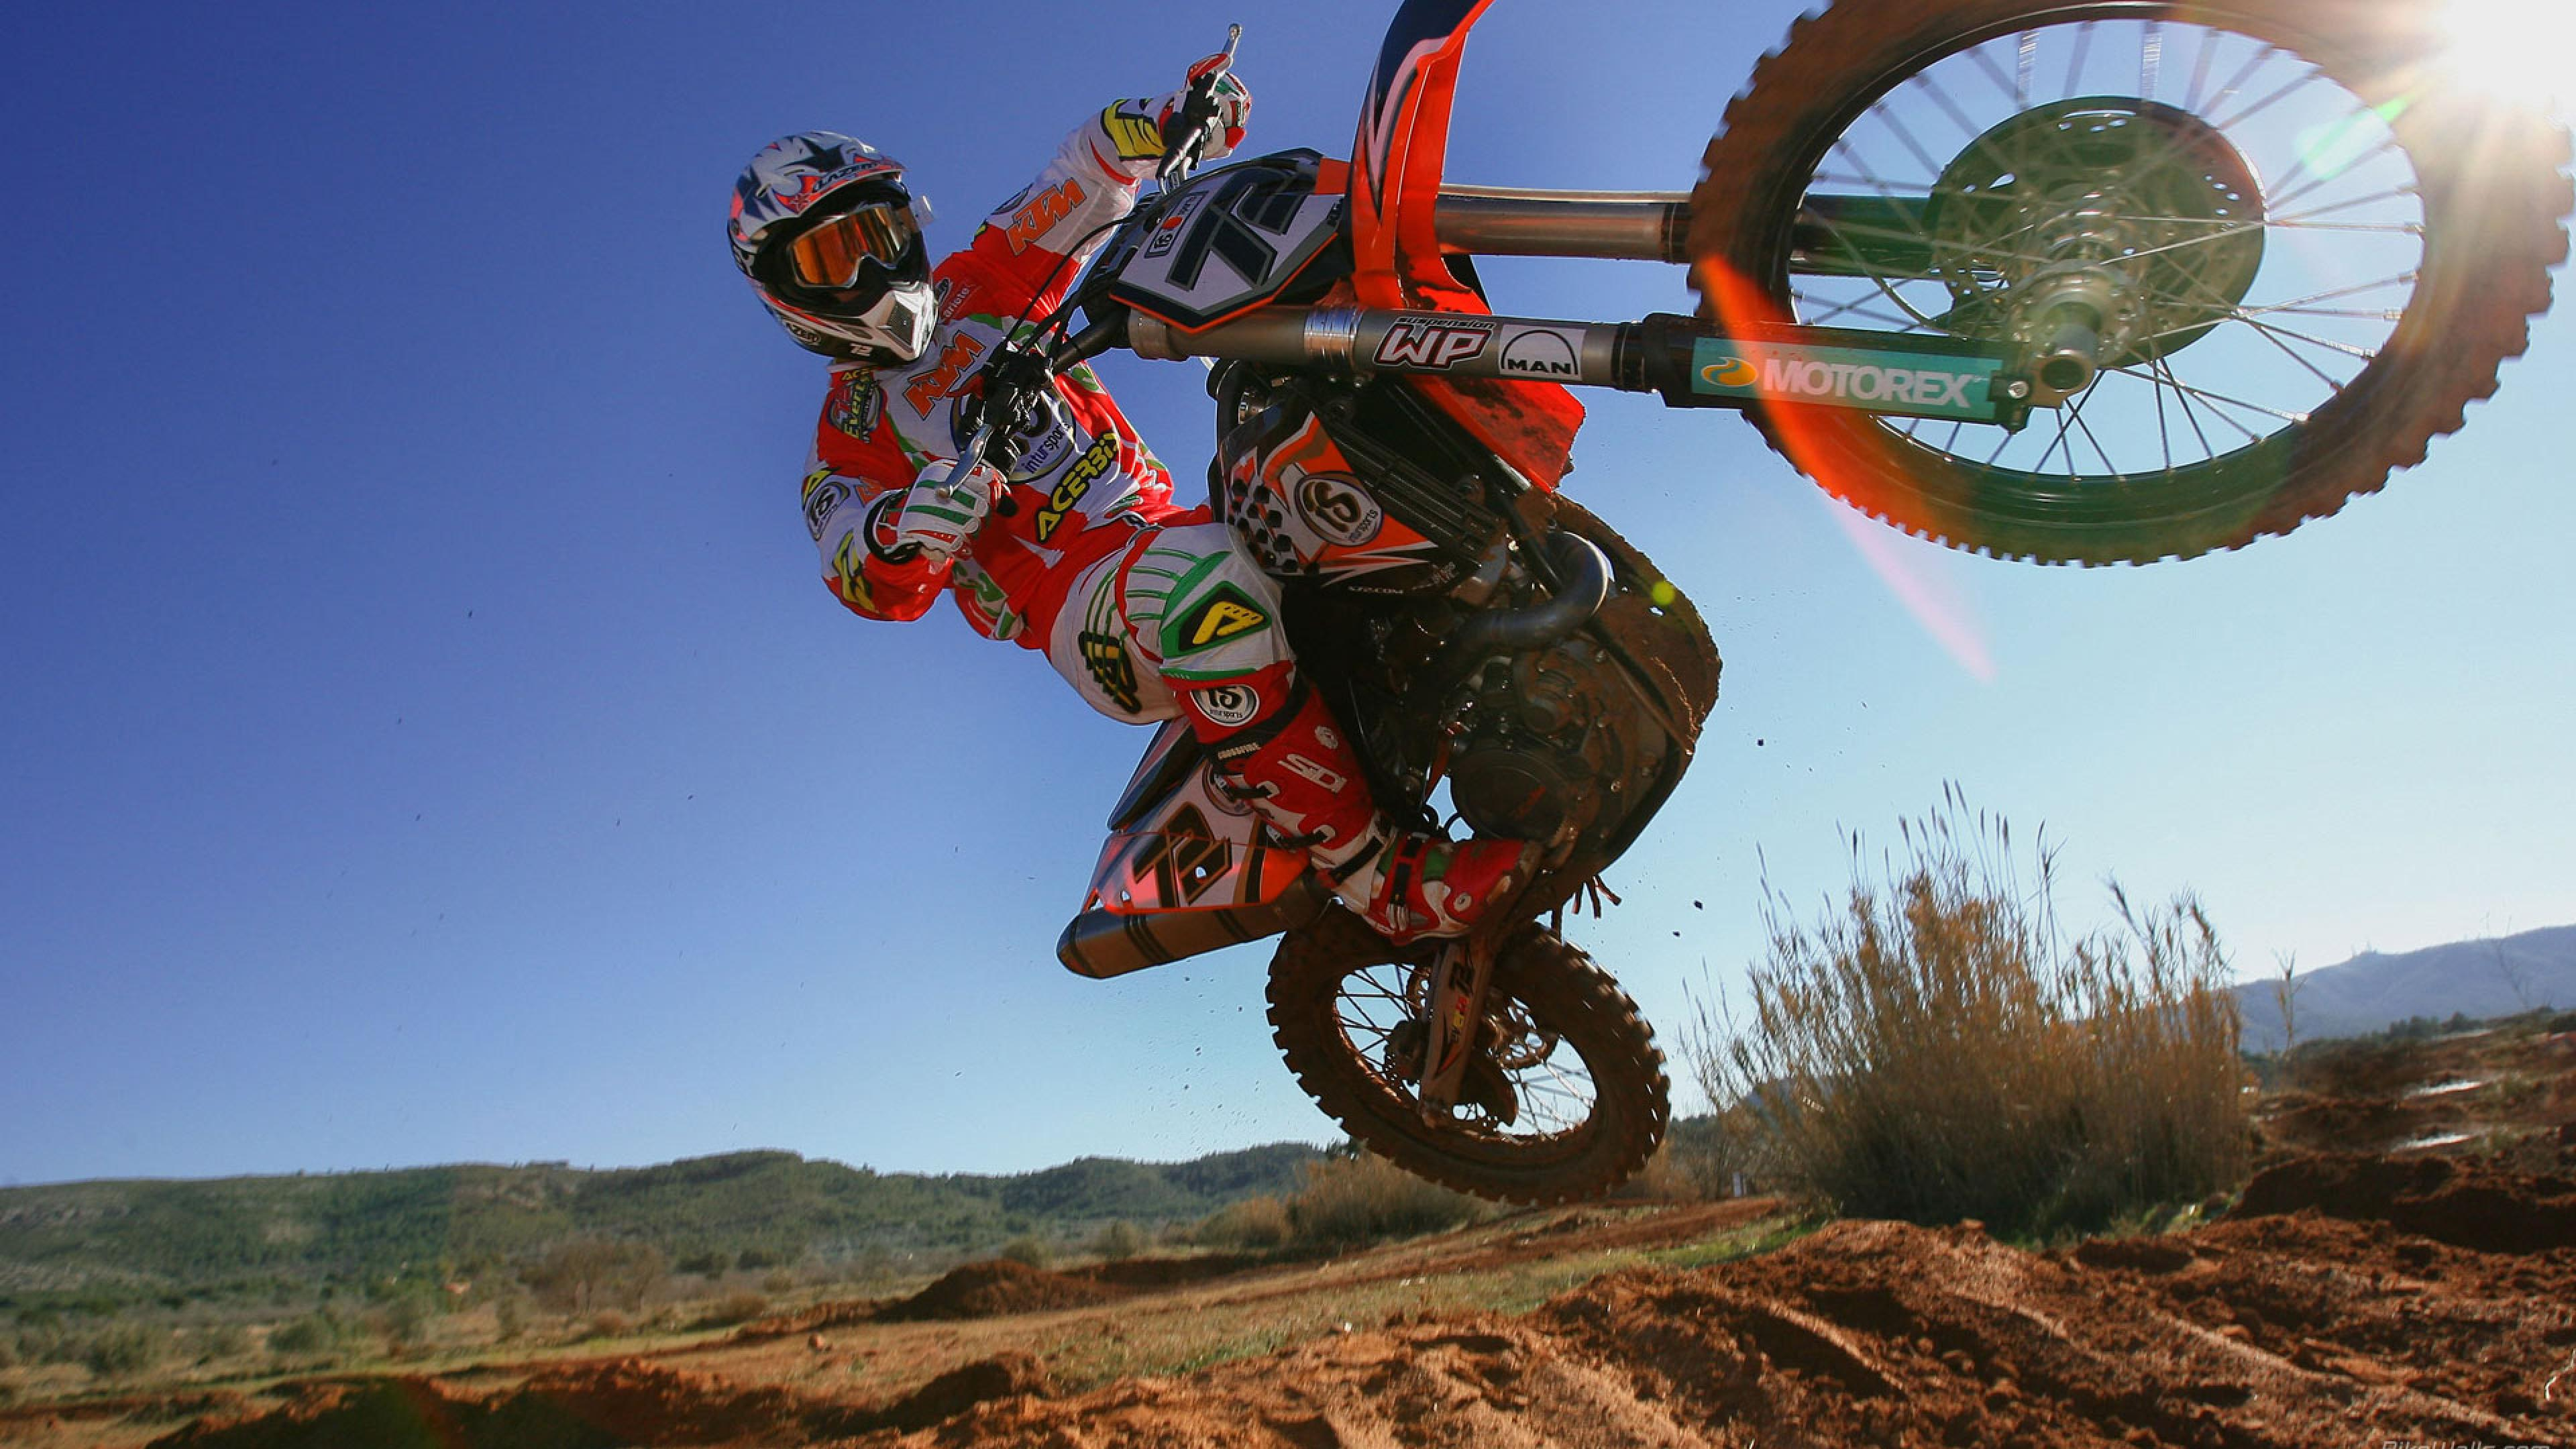 Download Motocross Ktm Wallpapers 3840x2160